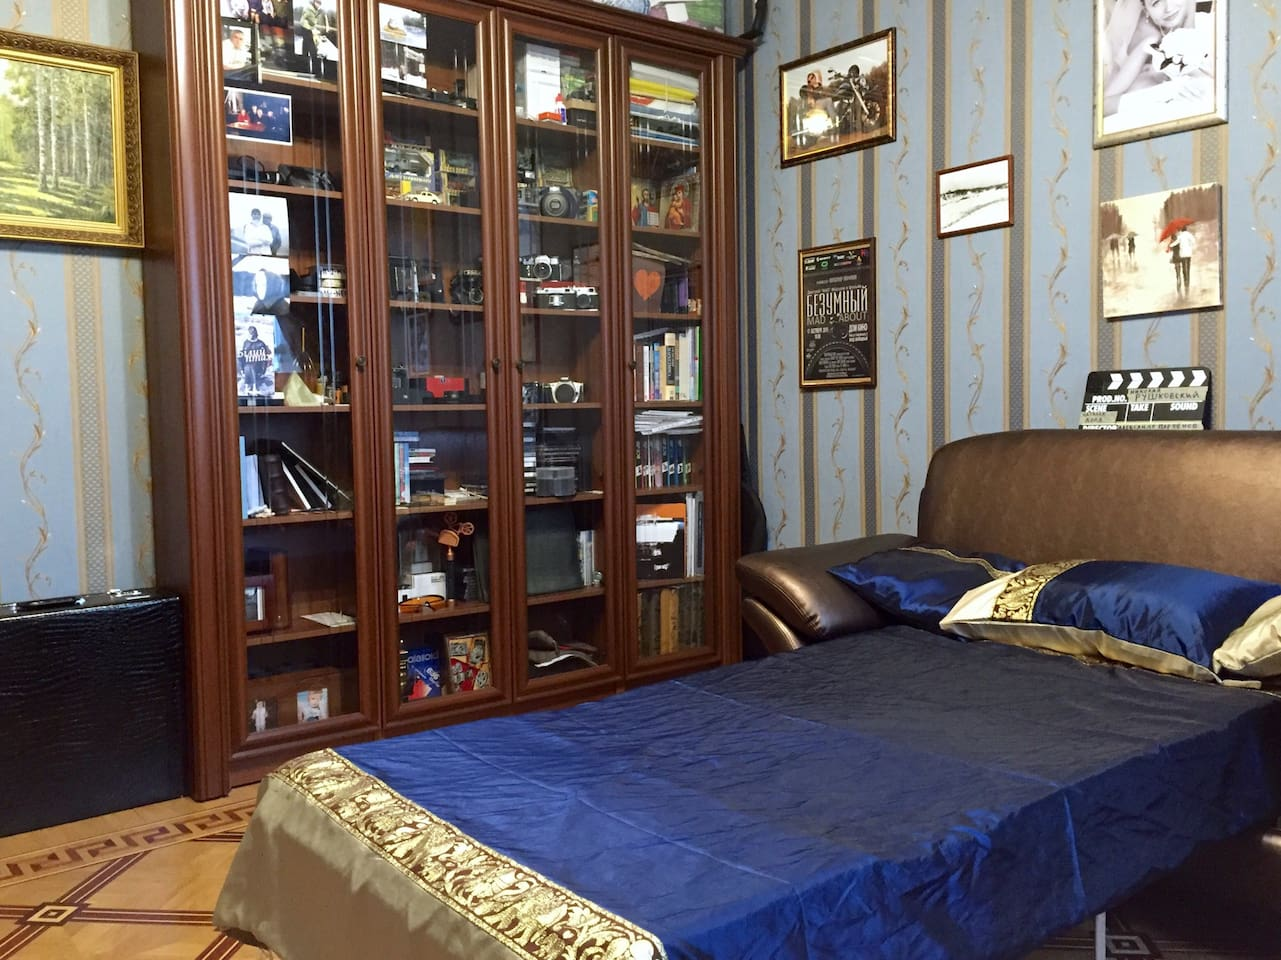 The room. Fold-out sofa. Bed linen and breakfast is included. Bathroom is private (for guest only).